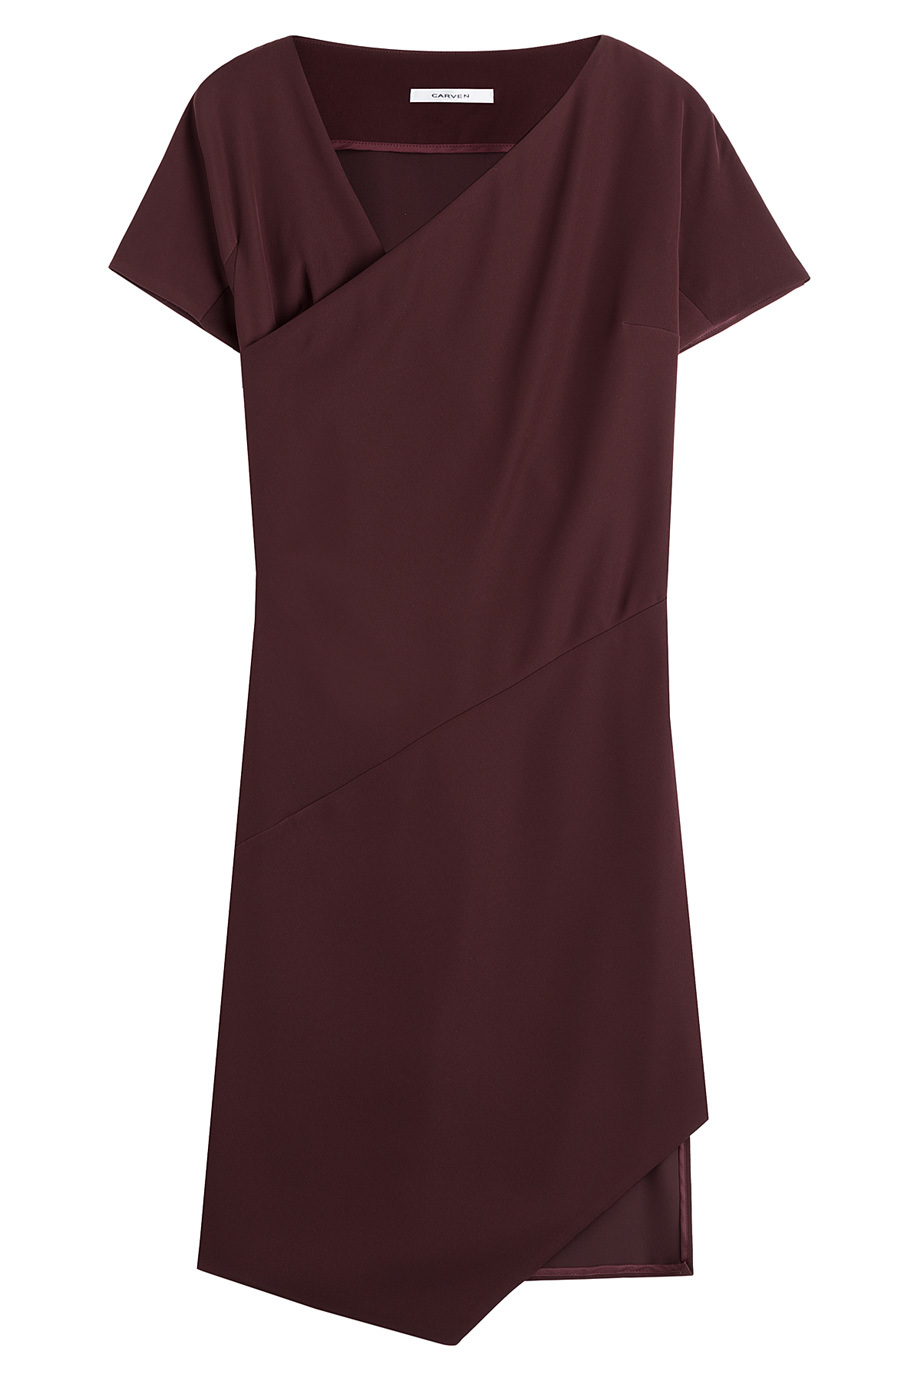 Dress With Asymmetric Hem - pattern: plain; neckline: asymmetric; predominant colour: burgundy; occasions: evening, occasion, creative work; length: on the knee; fit: body skimming; style: asymmetric (hem); fibres: polyester/polyamide - 100%; sleeve length: short sleeve; sleeve style: standard; pattern type: fabric; texture group: jersey - stretchy/drapey; season: a/w 2015; wardrobe: highlight